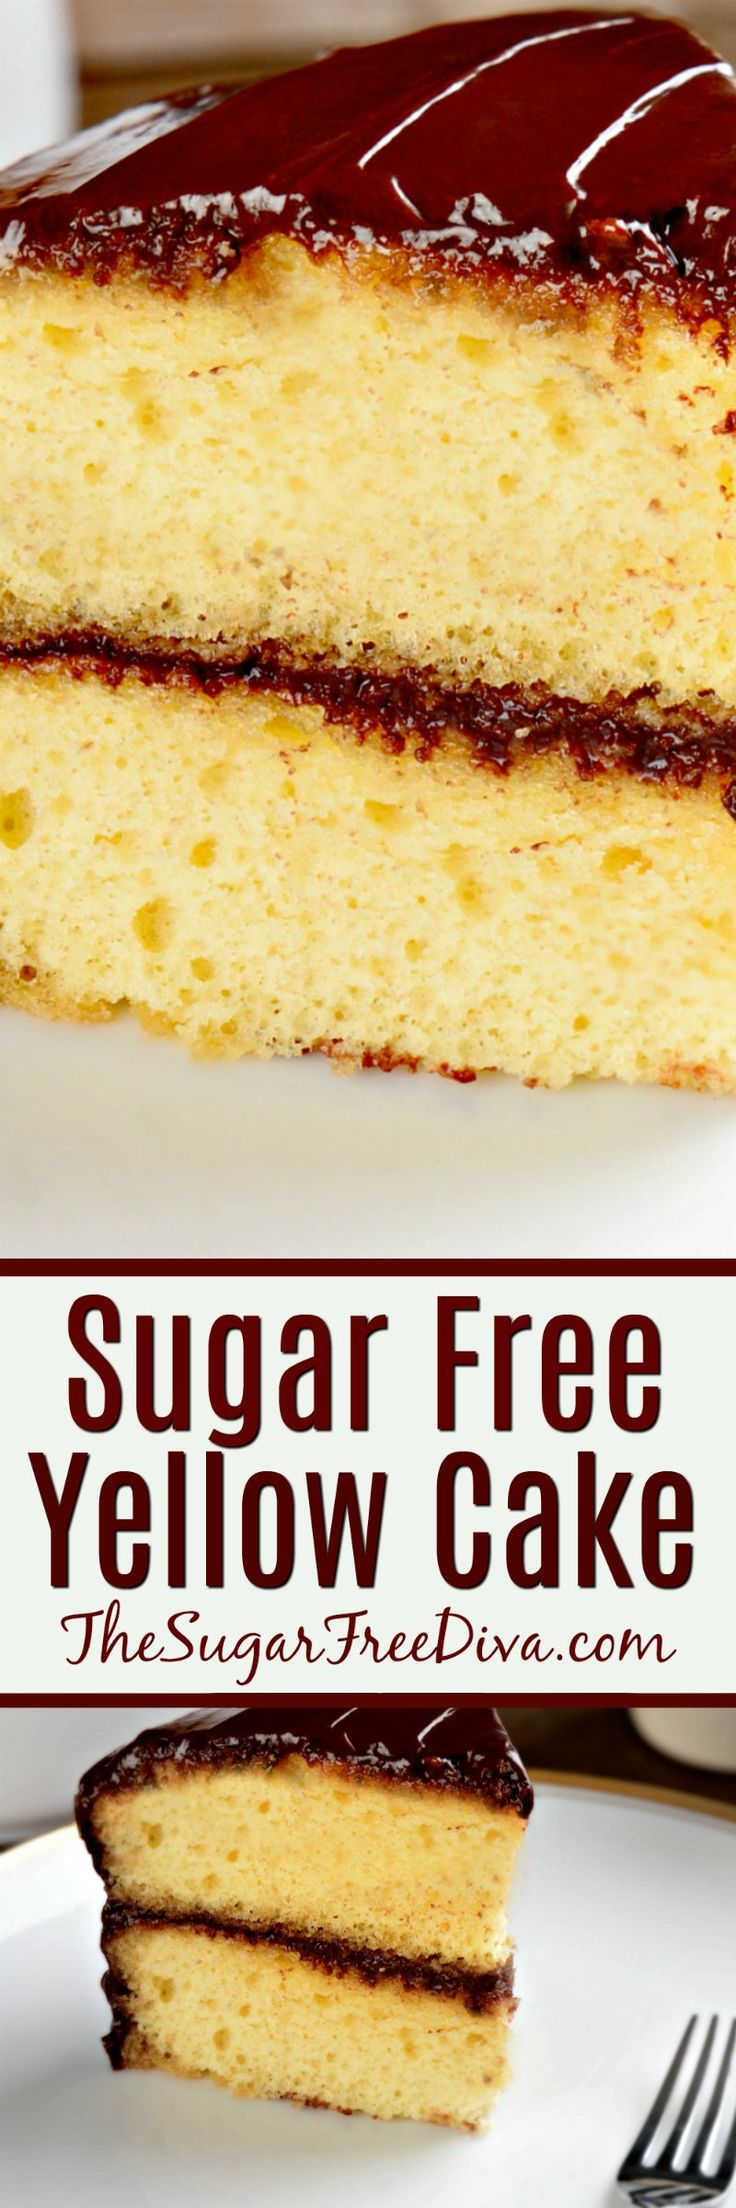 OMG!!!! It's a great tasting CAKE RECIPE that is also SUGAR FREE!! Yippee for that :)